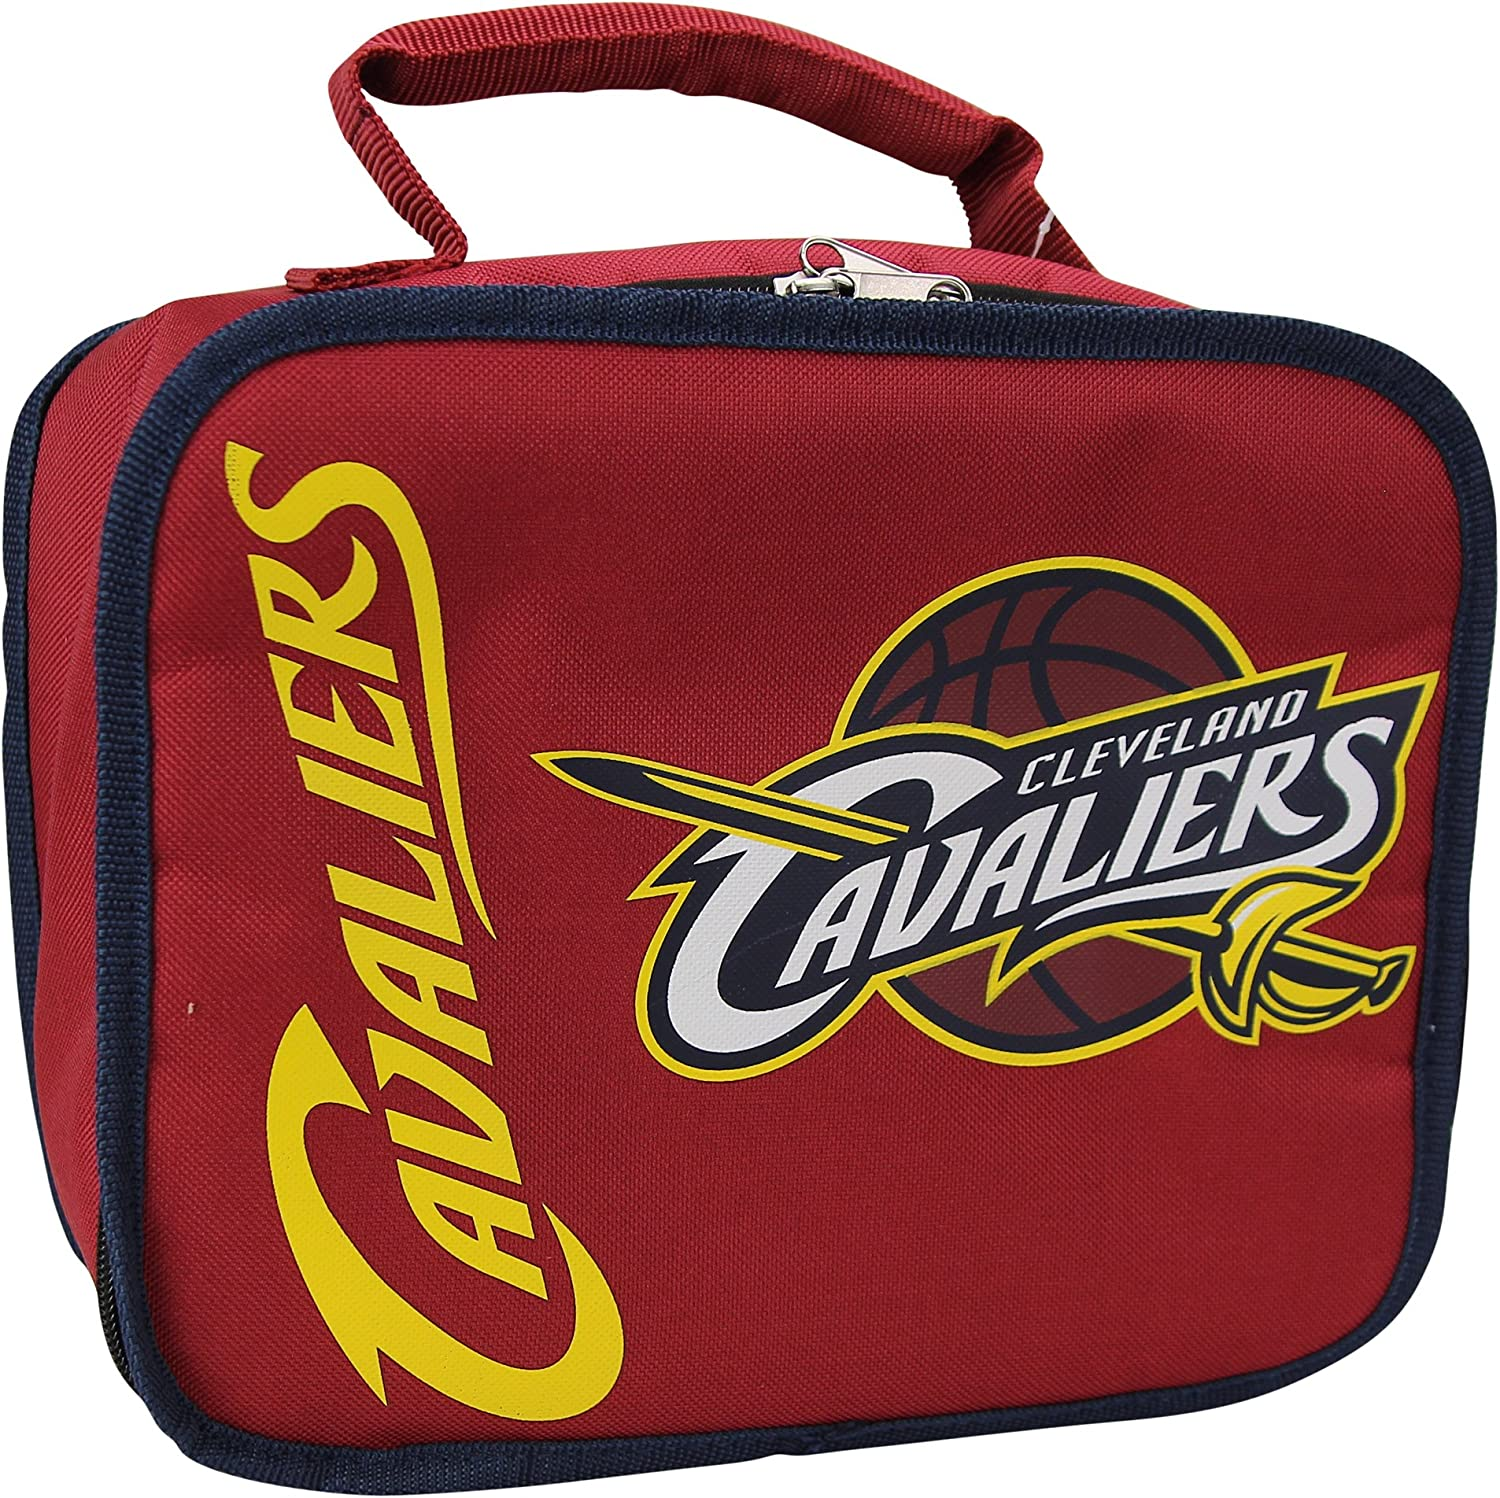 The Northwest OFFer Company Officially Licensed NBA Cooler Lunch Bag It is very popular